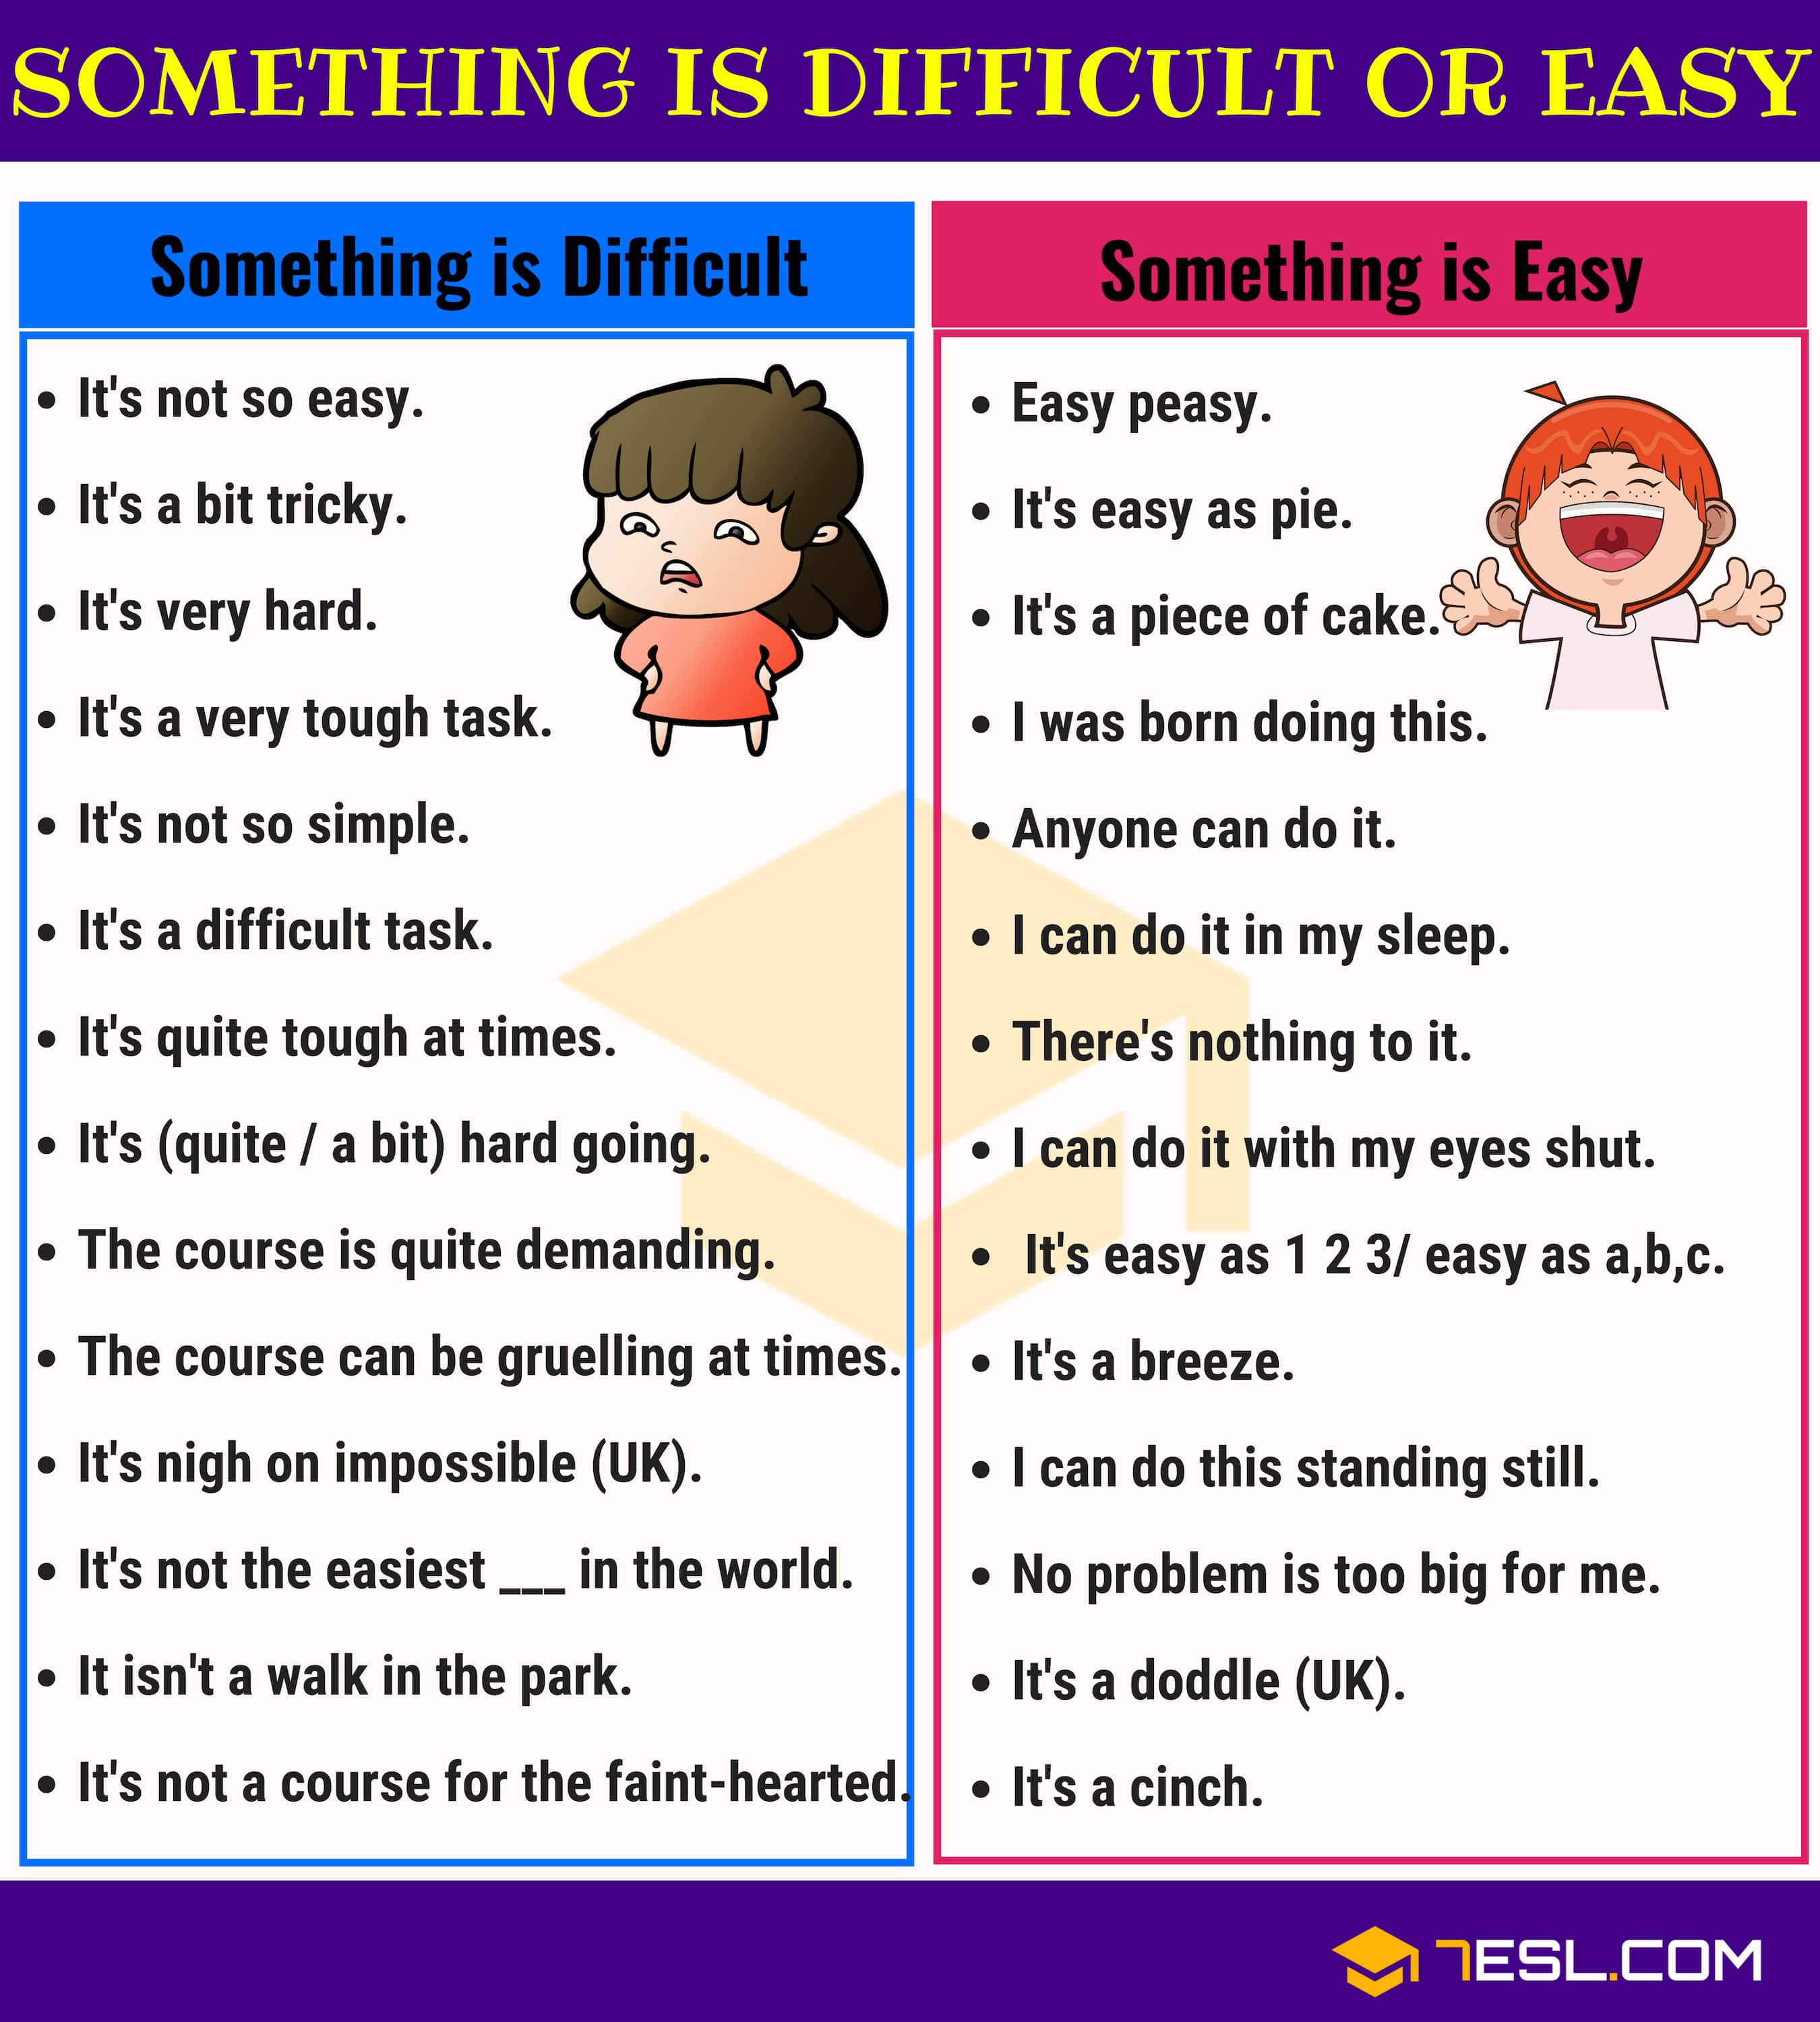 Other Ways to Say Something is EASY or DIFFICULT